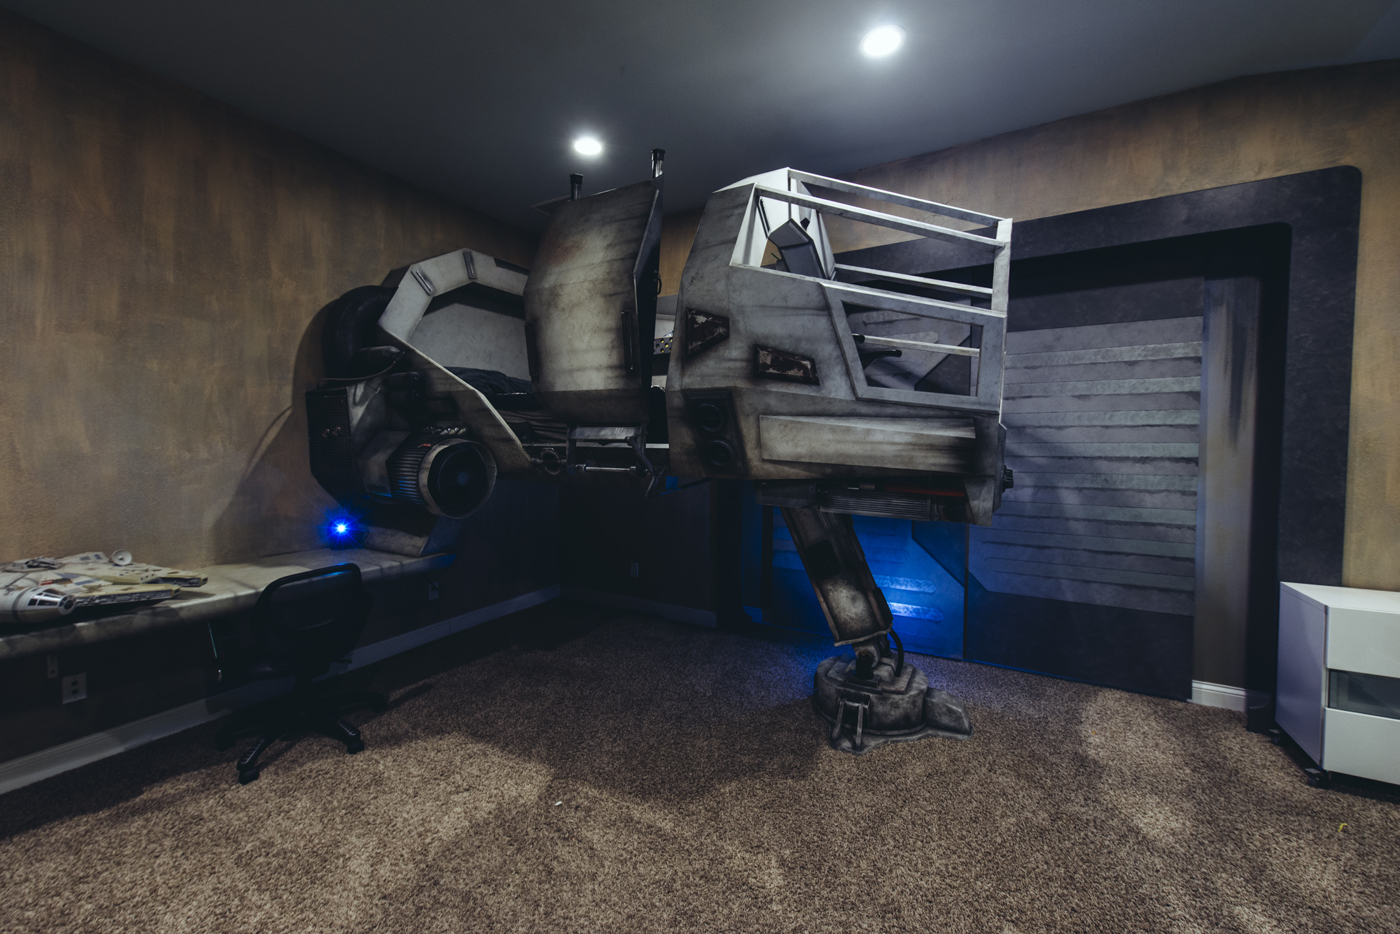 A father built his kids thiscool millennium falcon bed.